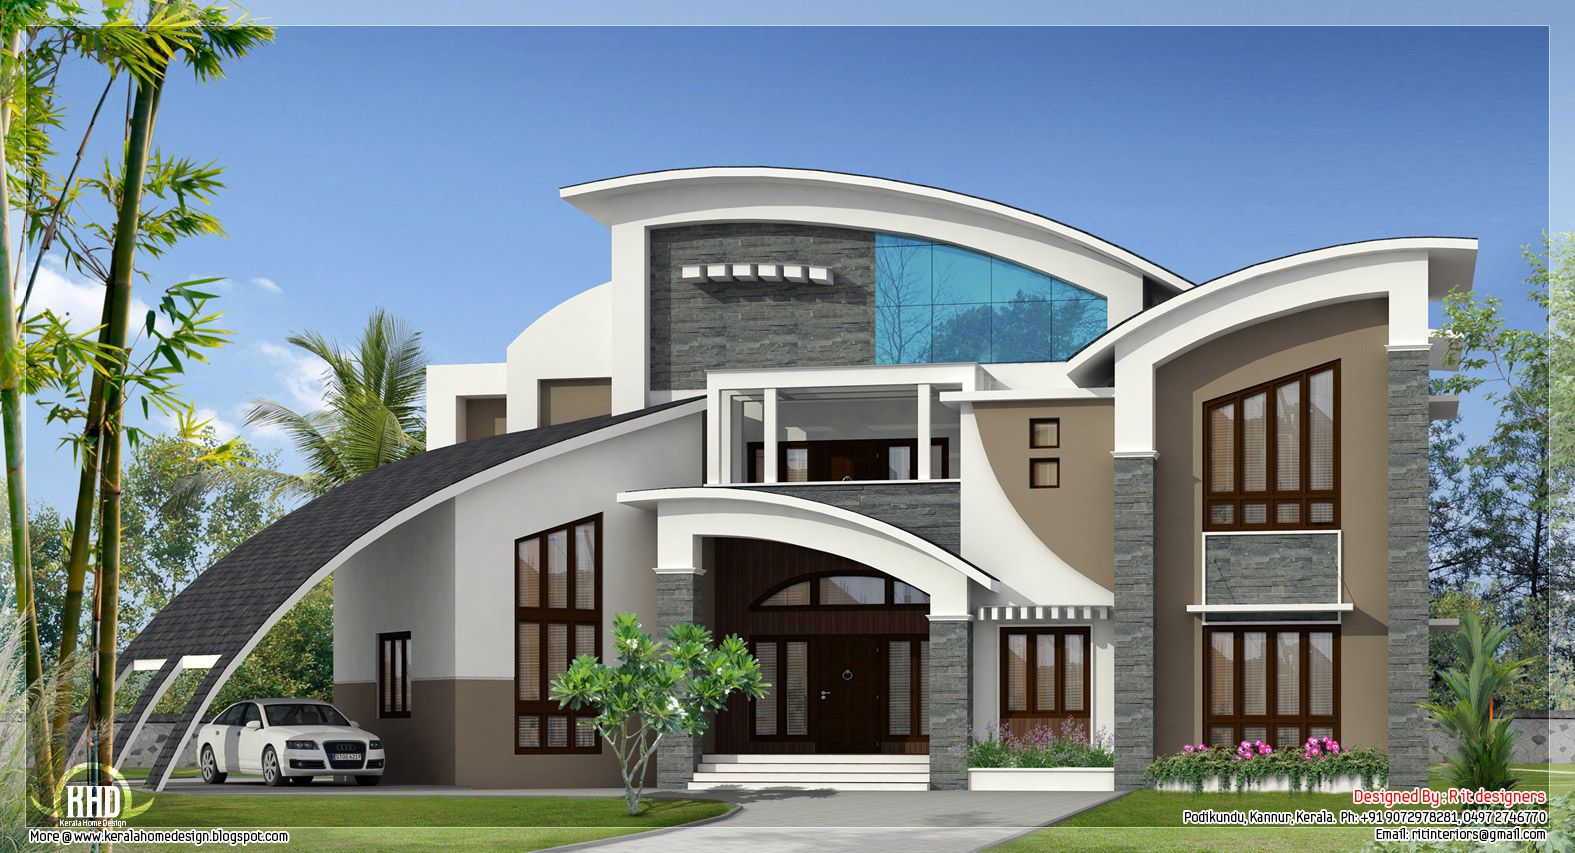 Unique Home Renovations Modern Architectural House Design Contemporary Home Designs